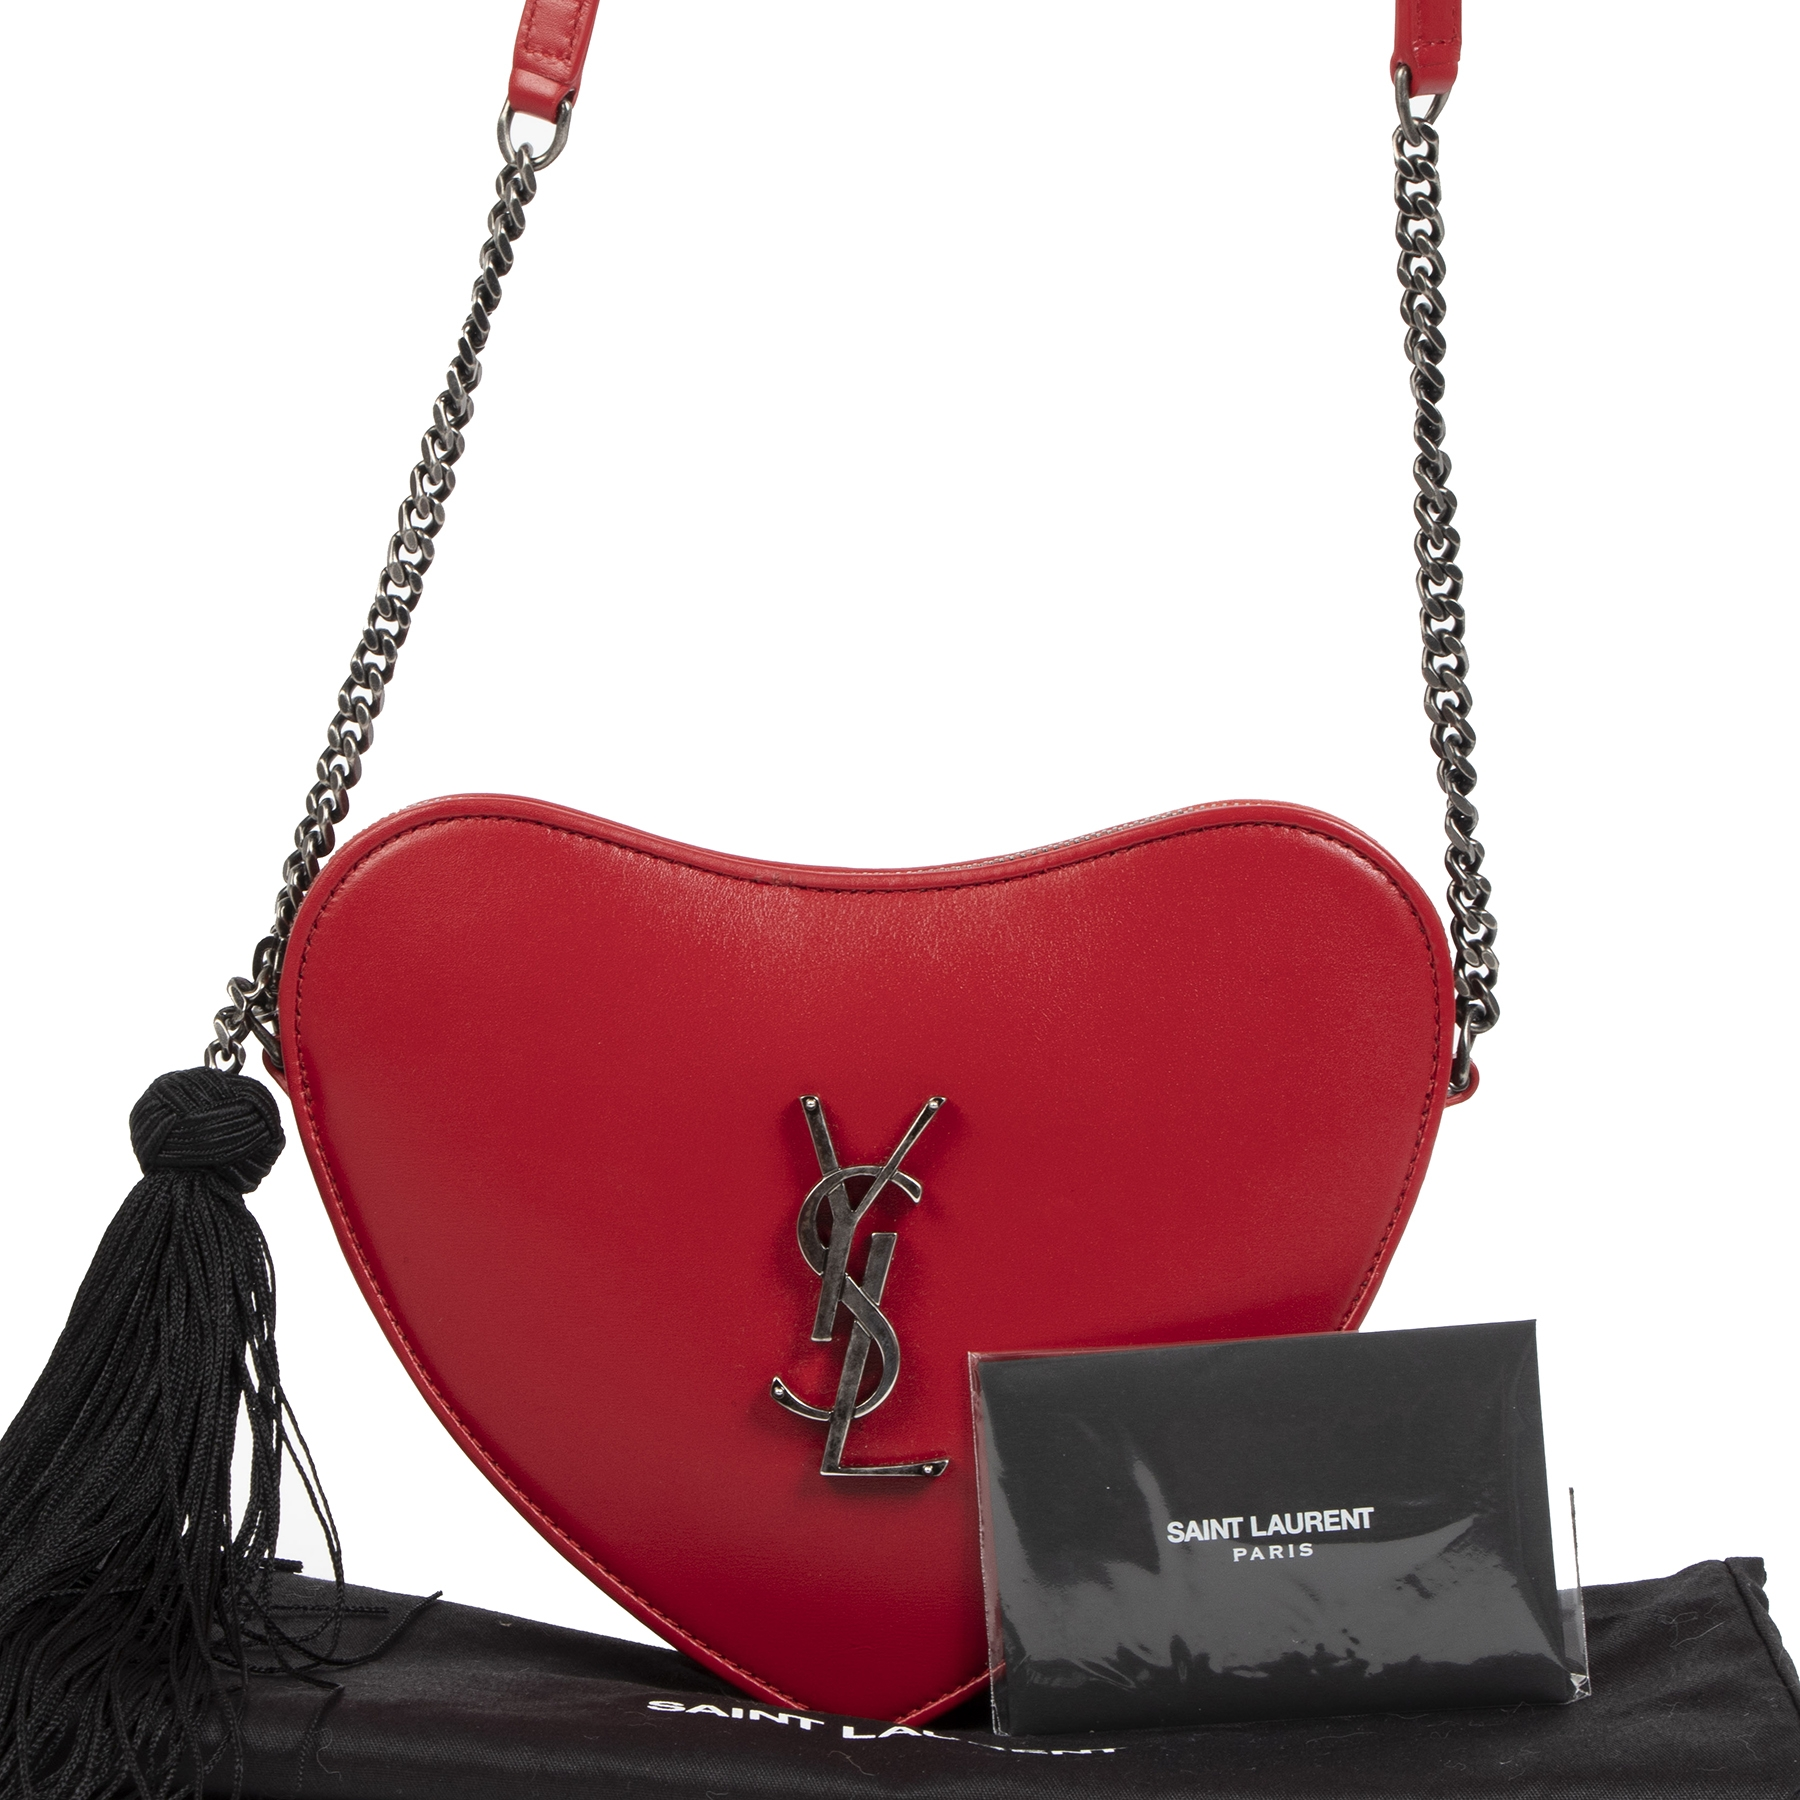 Saint Laurent Red Heart Bag bij Labellov tweedehands luxe in Antwerpen